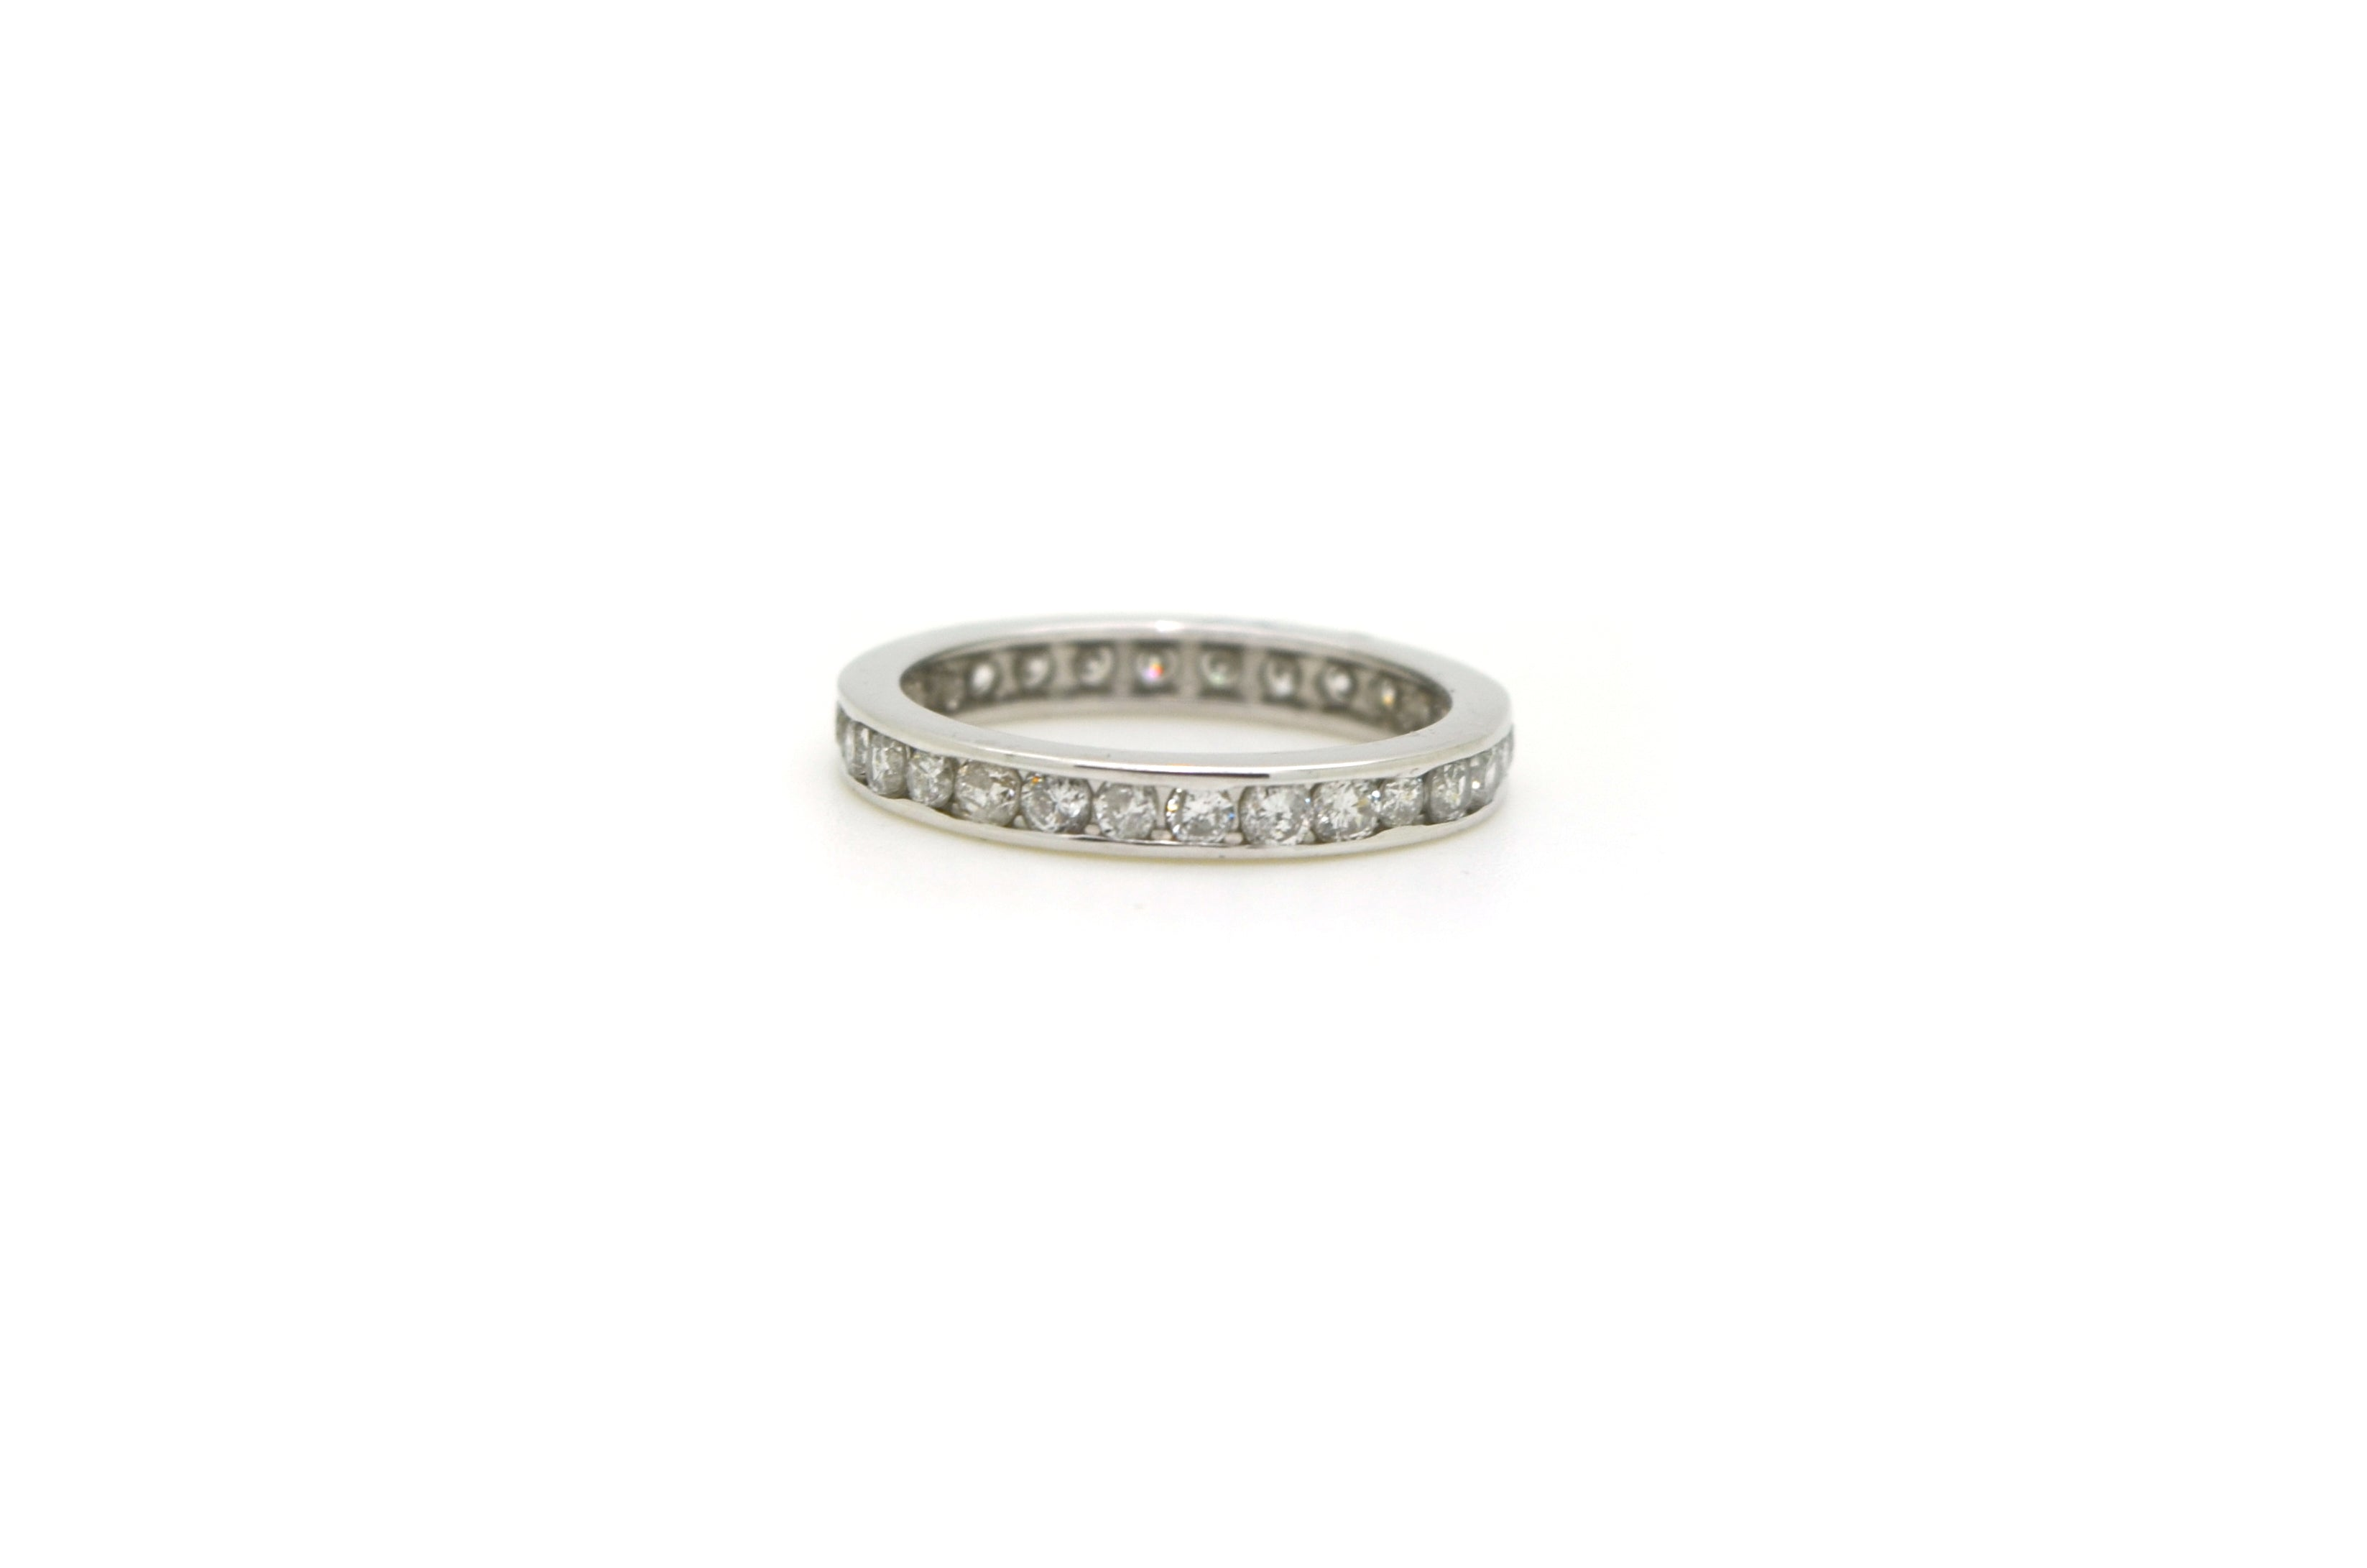 14k White Gold Channel Eternity Diamond Wedding Band Ring - 1.00 ct. - Size 4.5